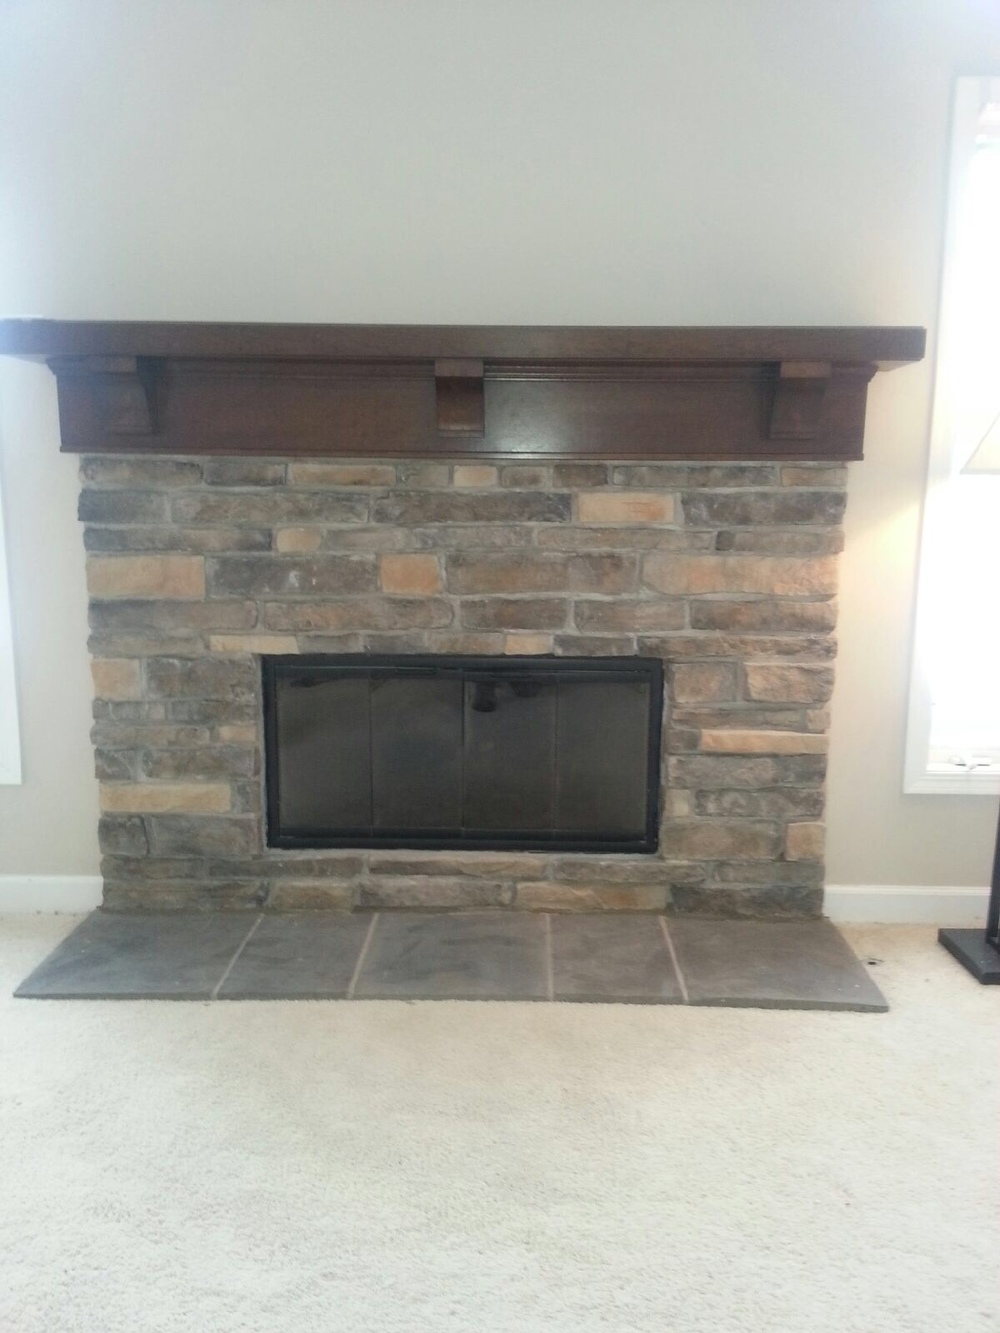 Wood Burning Fireplace w/ Stone Work, Glass Doors and Mantel